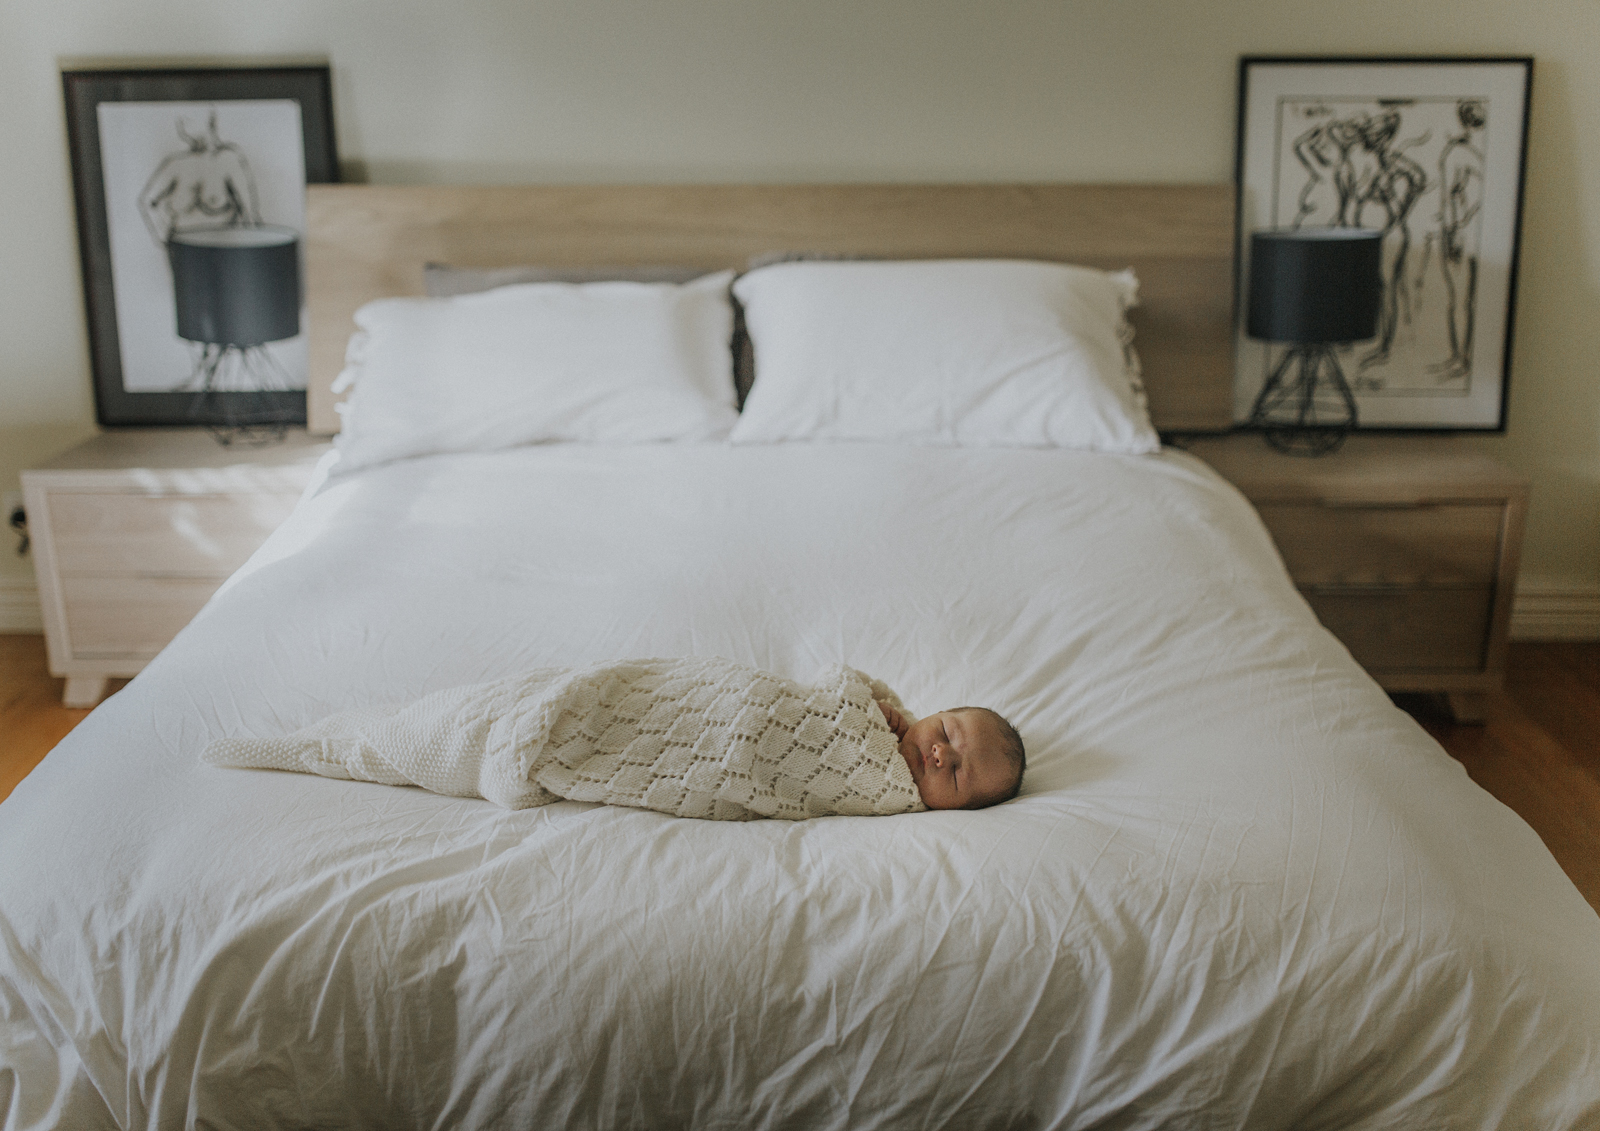 Newborn baby snuggled on his parent's bed